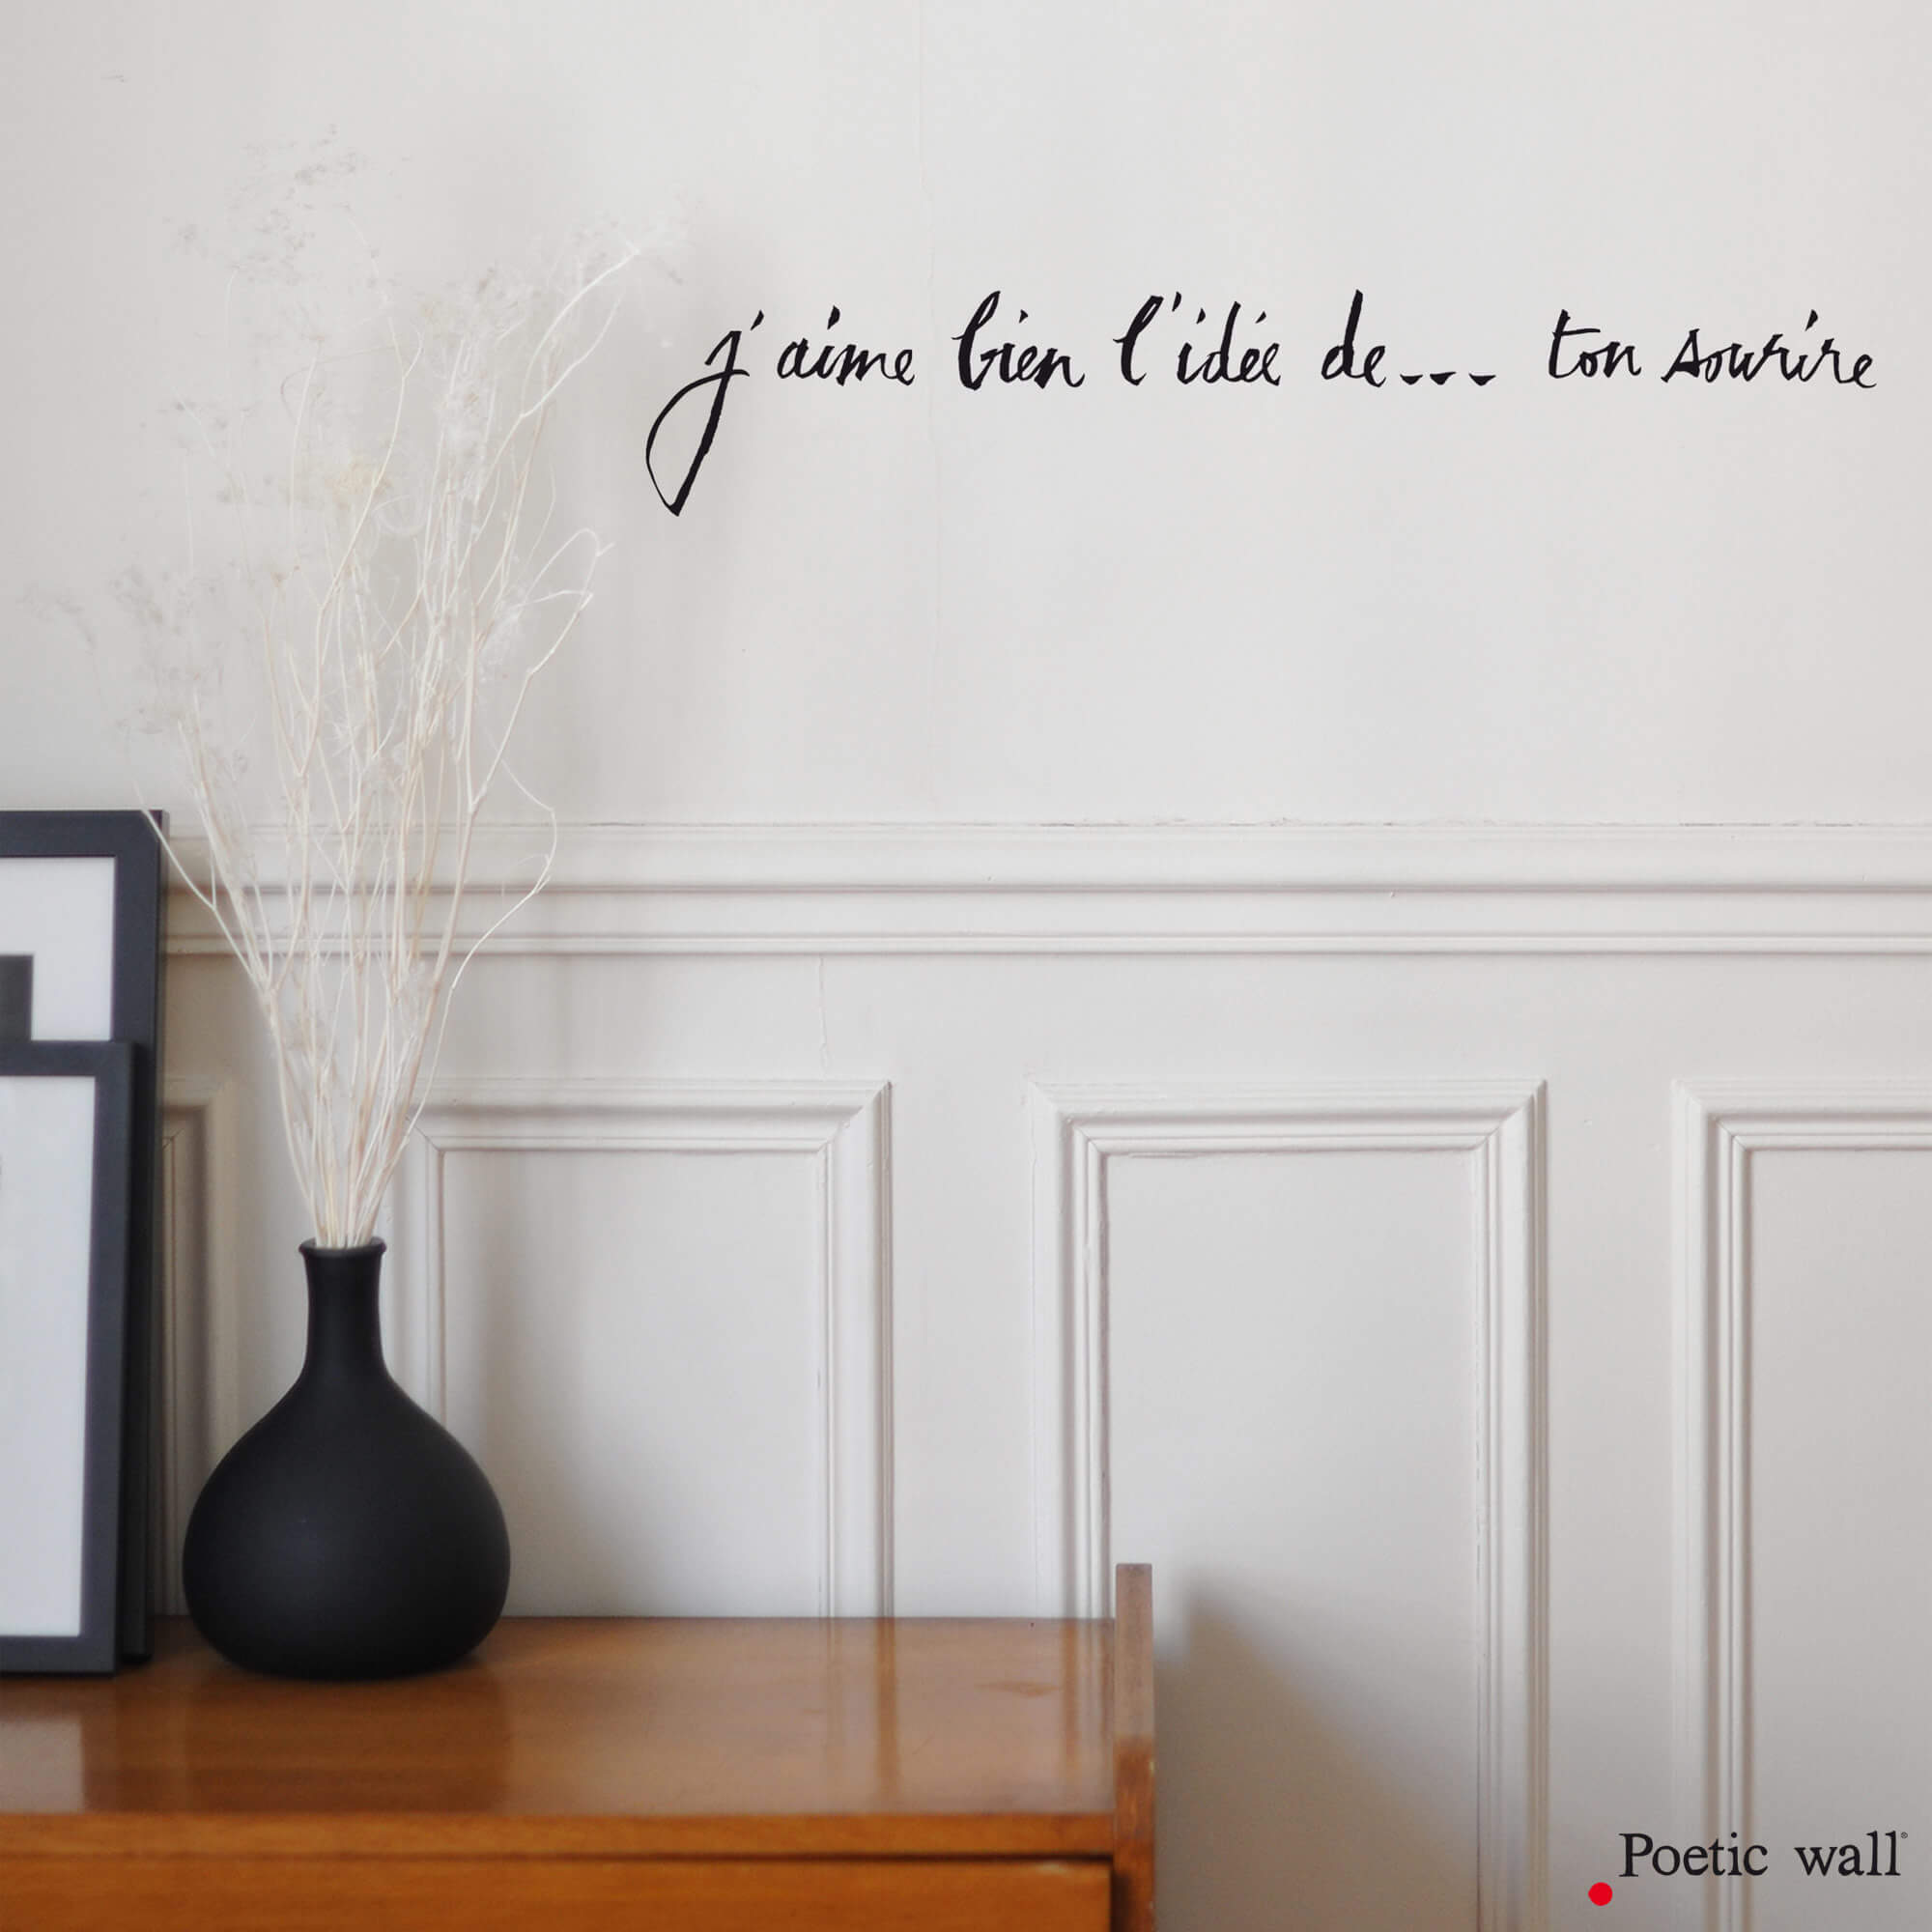 stickers-j-aime-bien-l-idee-de-ton-sourire-poetic-wall-stickers